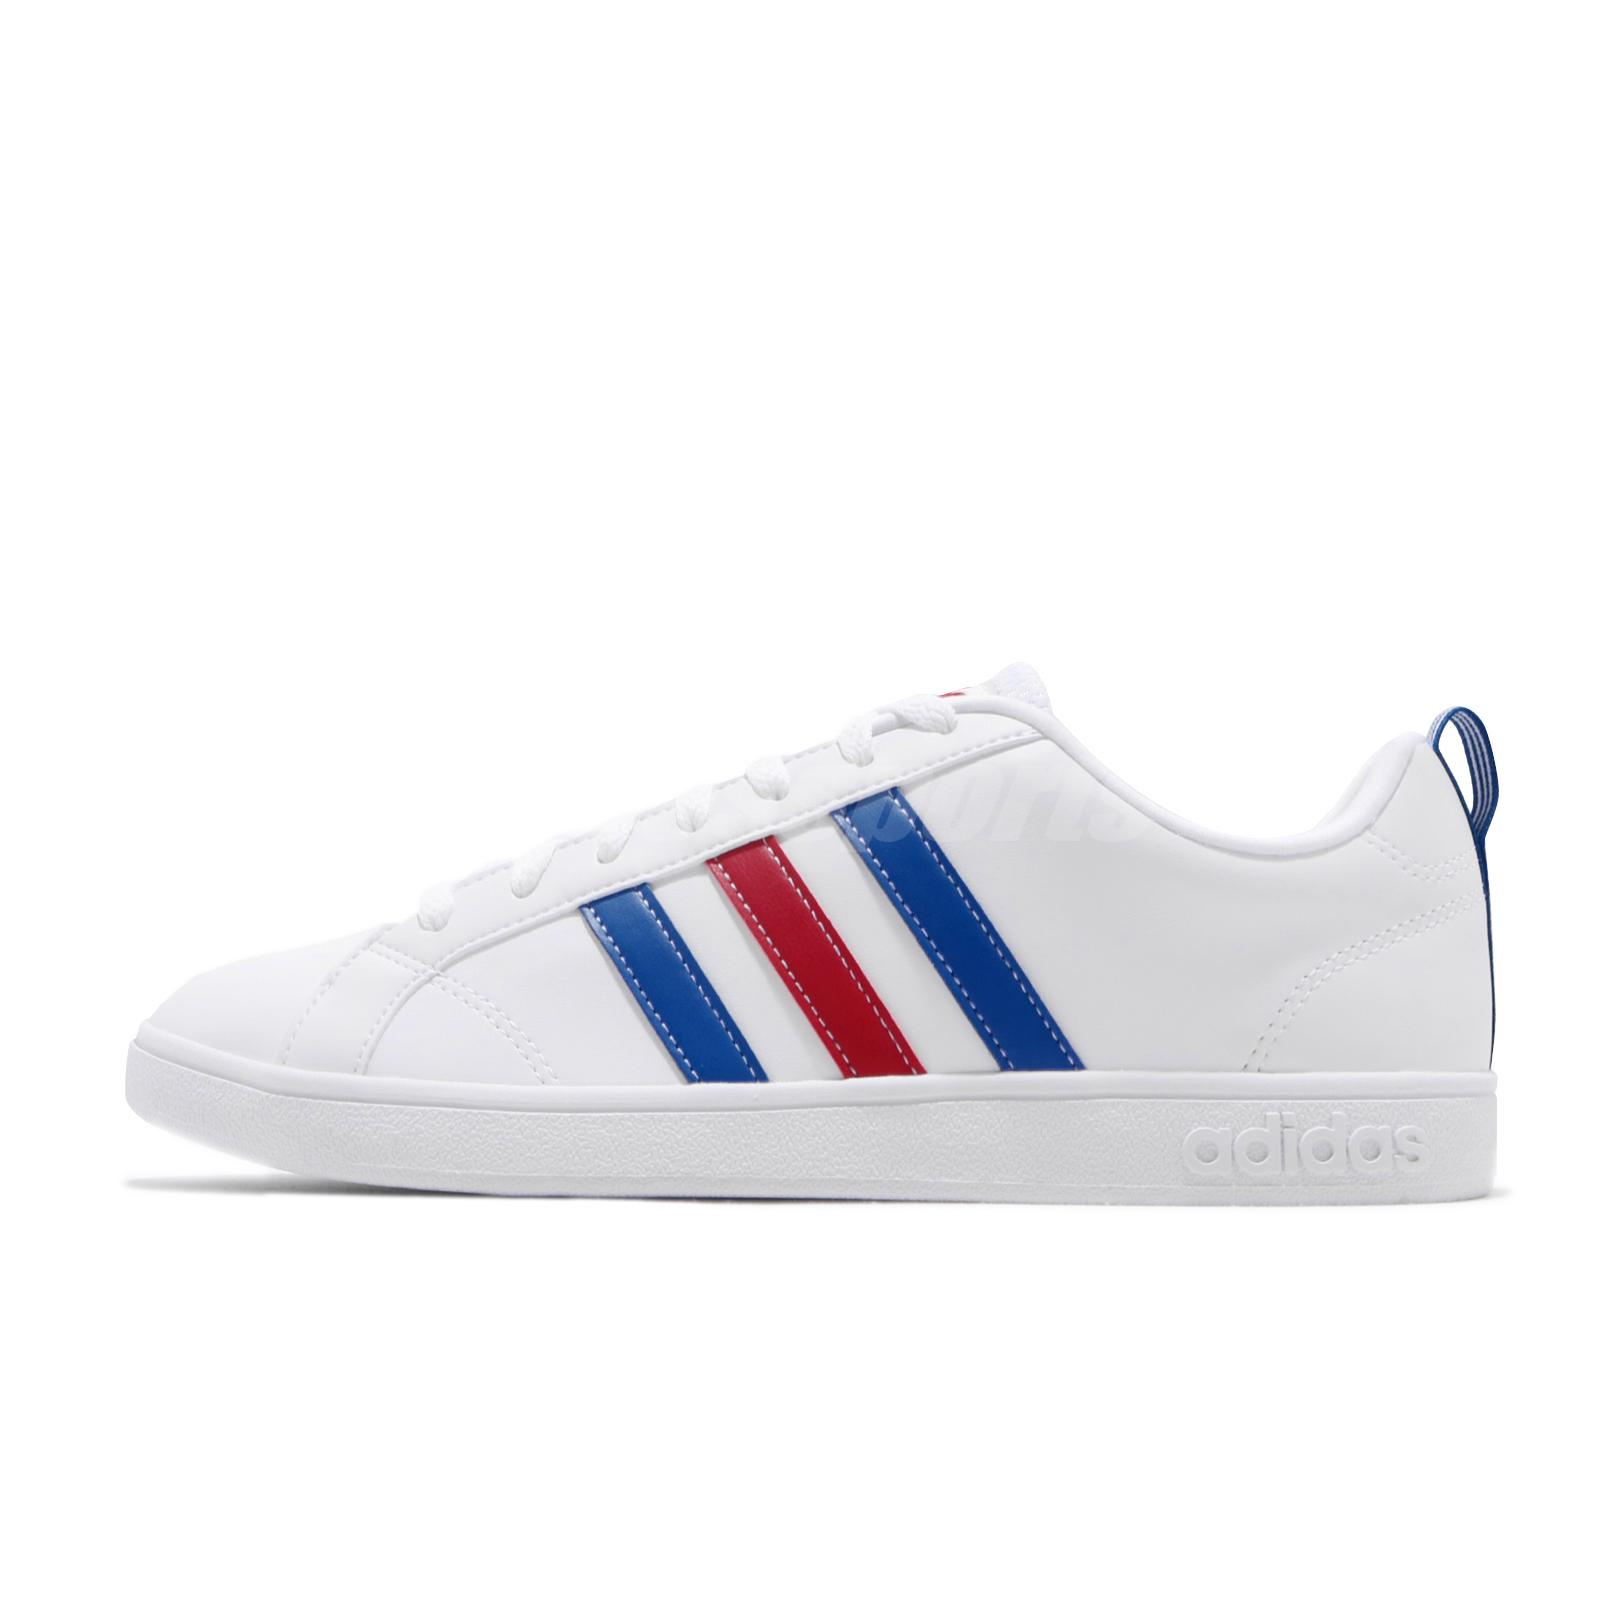 adidas neo label vs advantage white red blue mens shoes. Black Bedroom Furniture Sets. Home Design Ideas